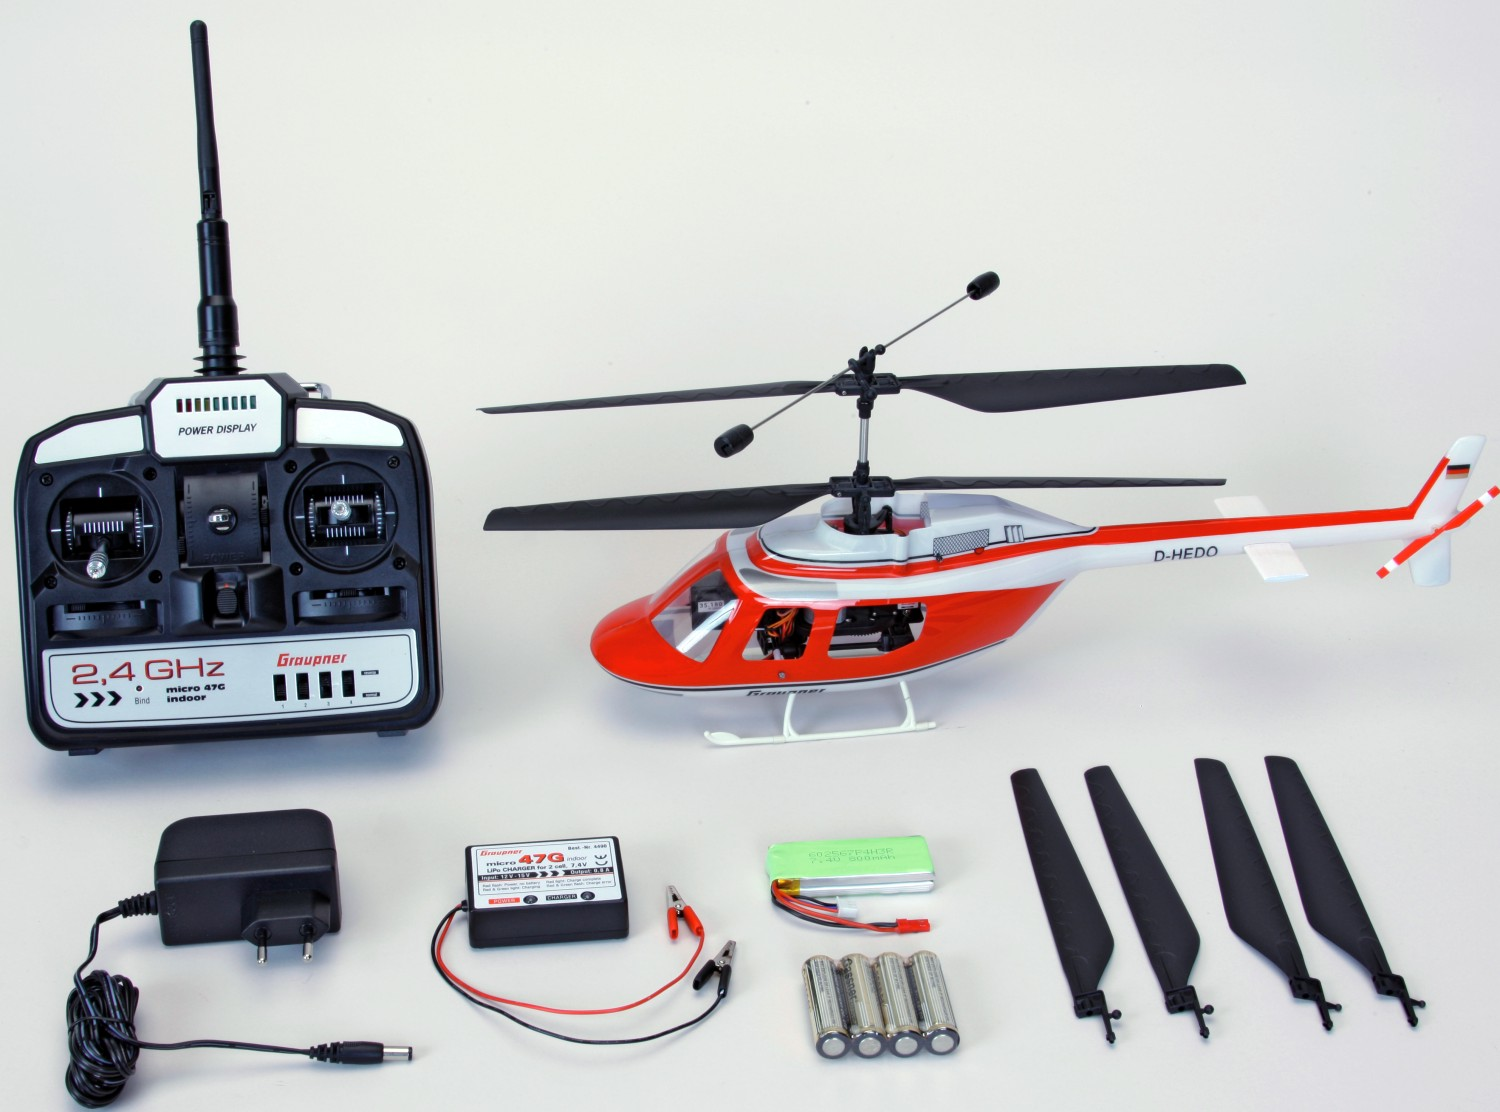 4 channel indoor rc helicopter with Gr4492 2g4gb on Fpv Rc Quadcopter Drone With 2mp Hd Wifi Camera Mini Drone Real Time Live Video 4 Channel 2 4ghz 6 Gyro Rc Helicopter H6w as well Double Horse 9098 Mini Helicopter With Gyro P11 moreover Syma S8 3 5 Channel Rc Helecopter also 409264684860484400 further 1892240772.